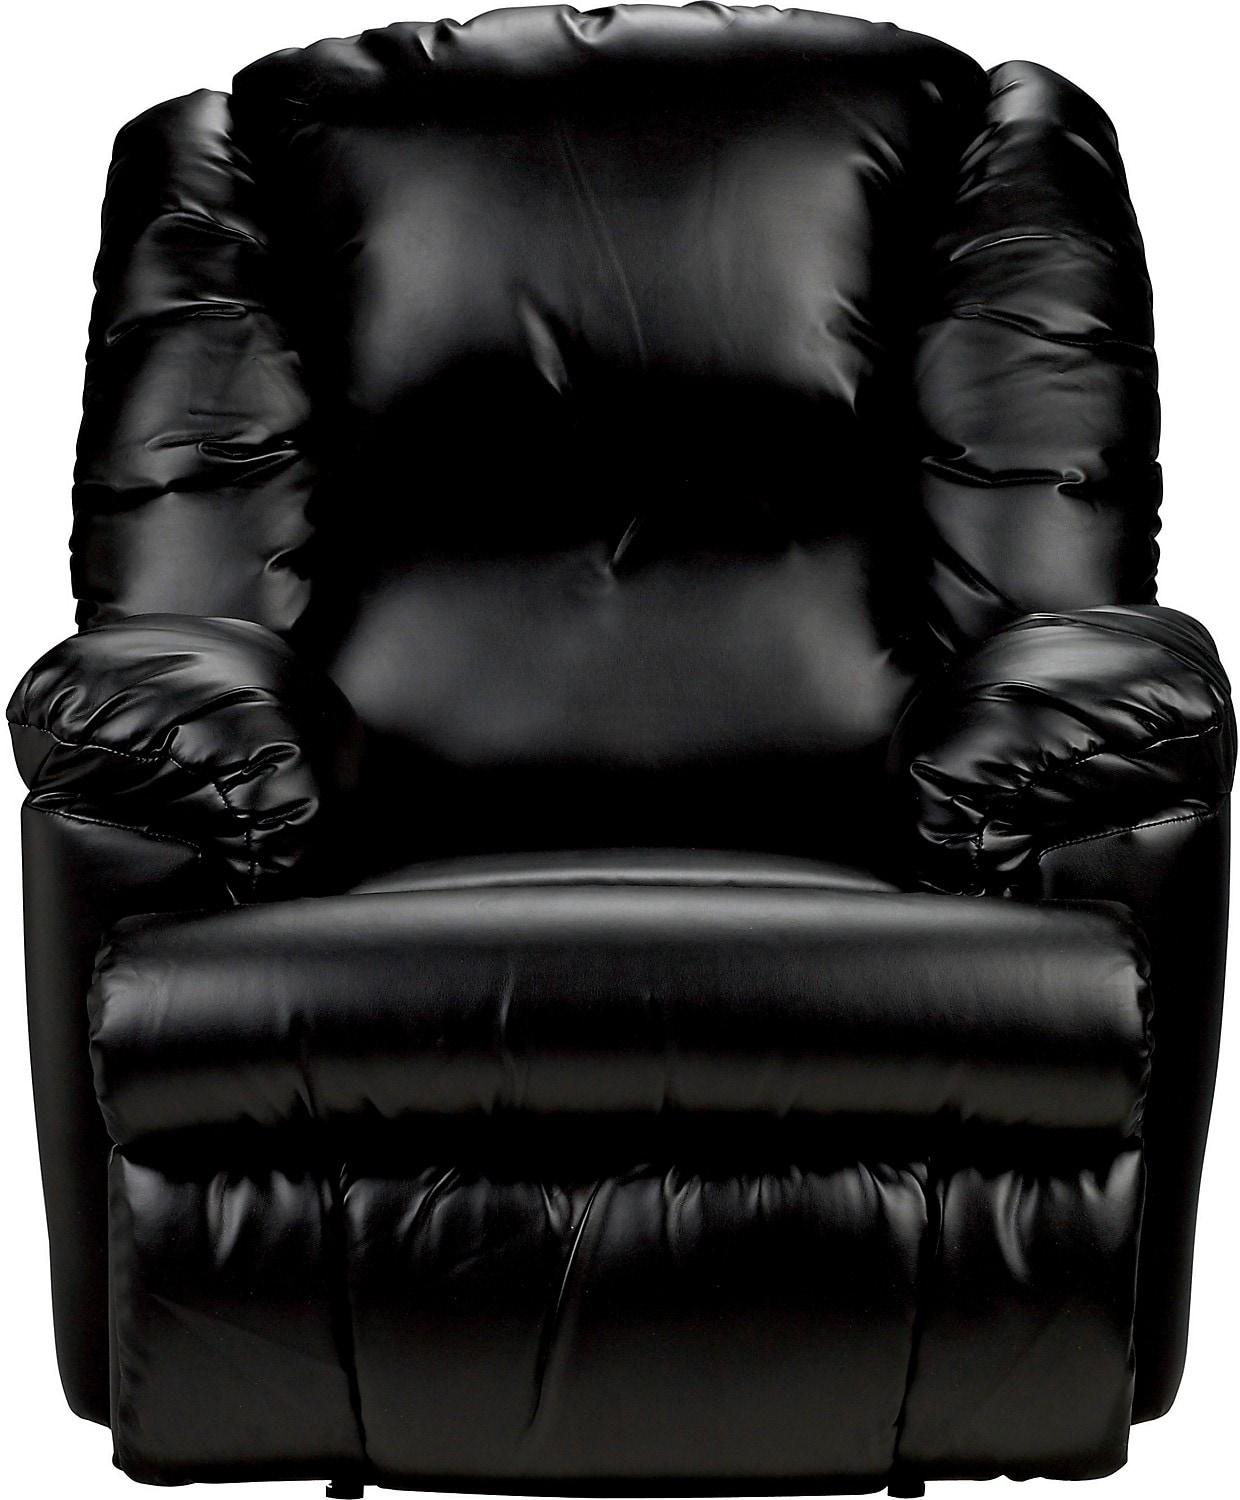 Bmaxx Bonded Leather Power Reclining Chair – Black